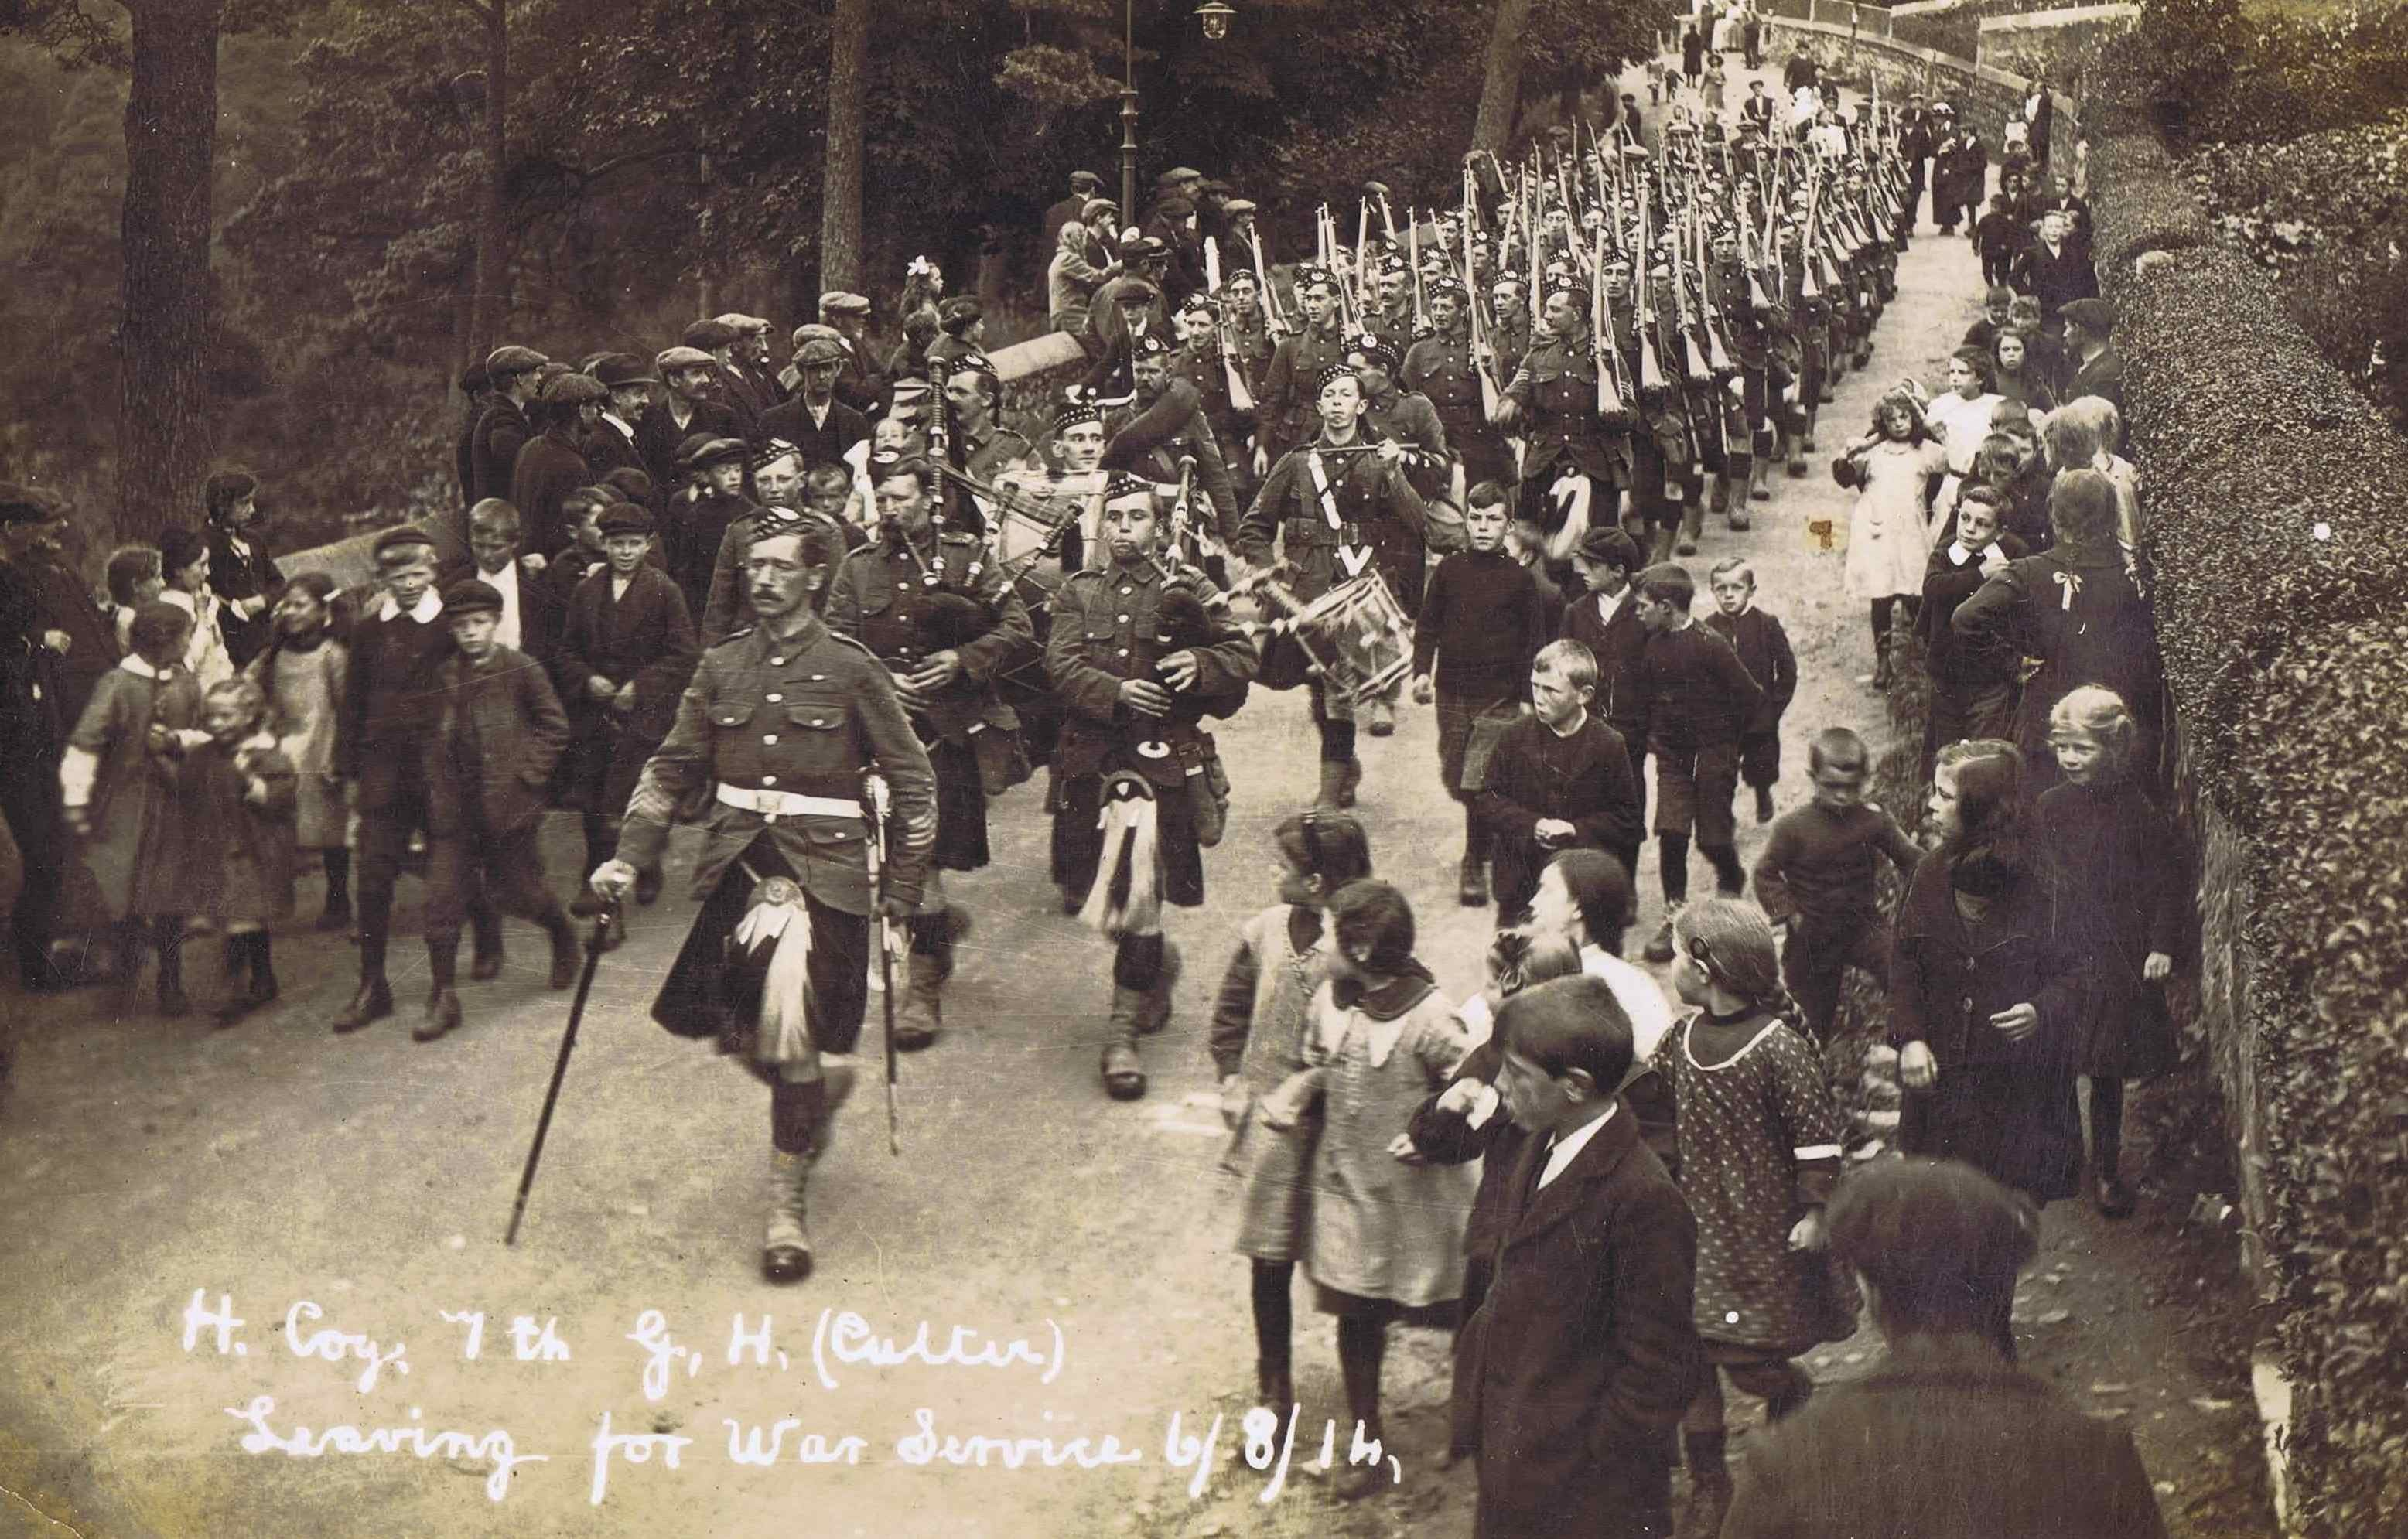 On parade:  The 7th (Deeside) Battalion of the Gordon Highlanders. pictures courtesy of the gordon highlanders museum